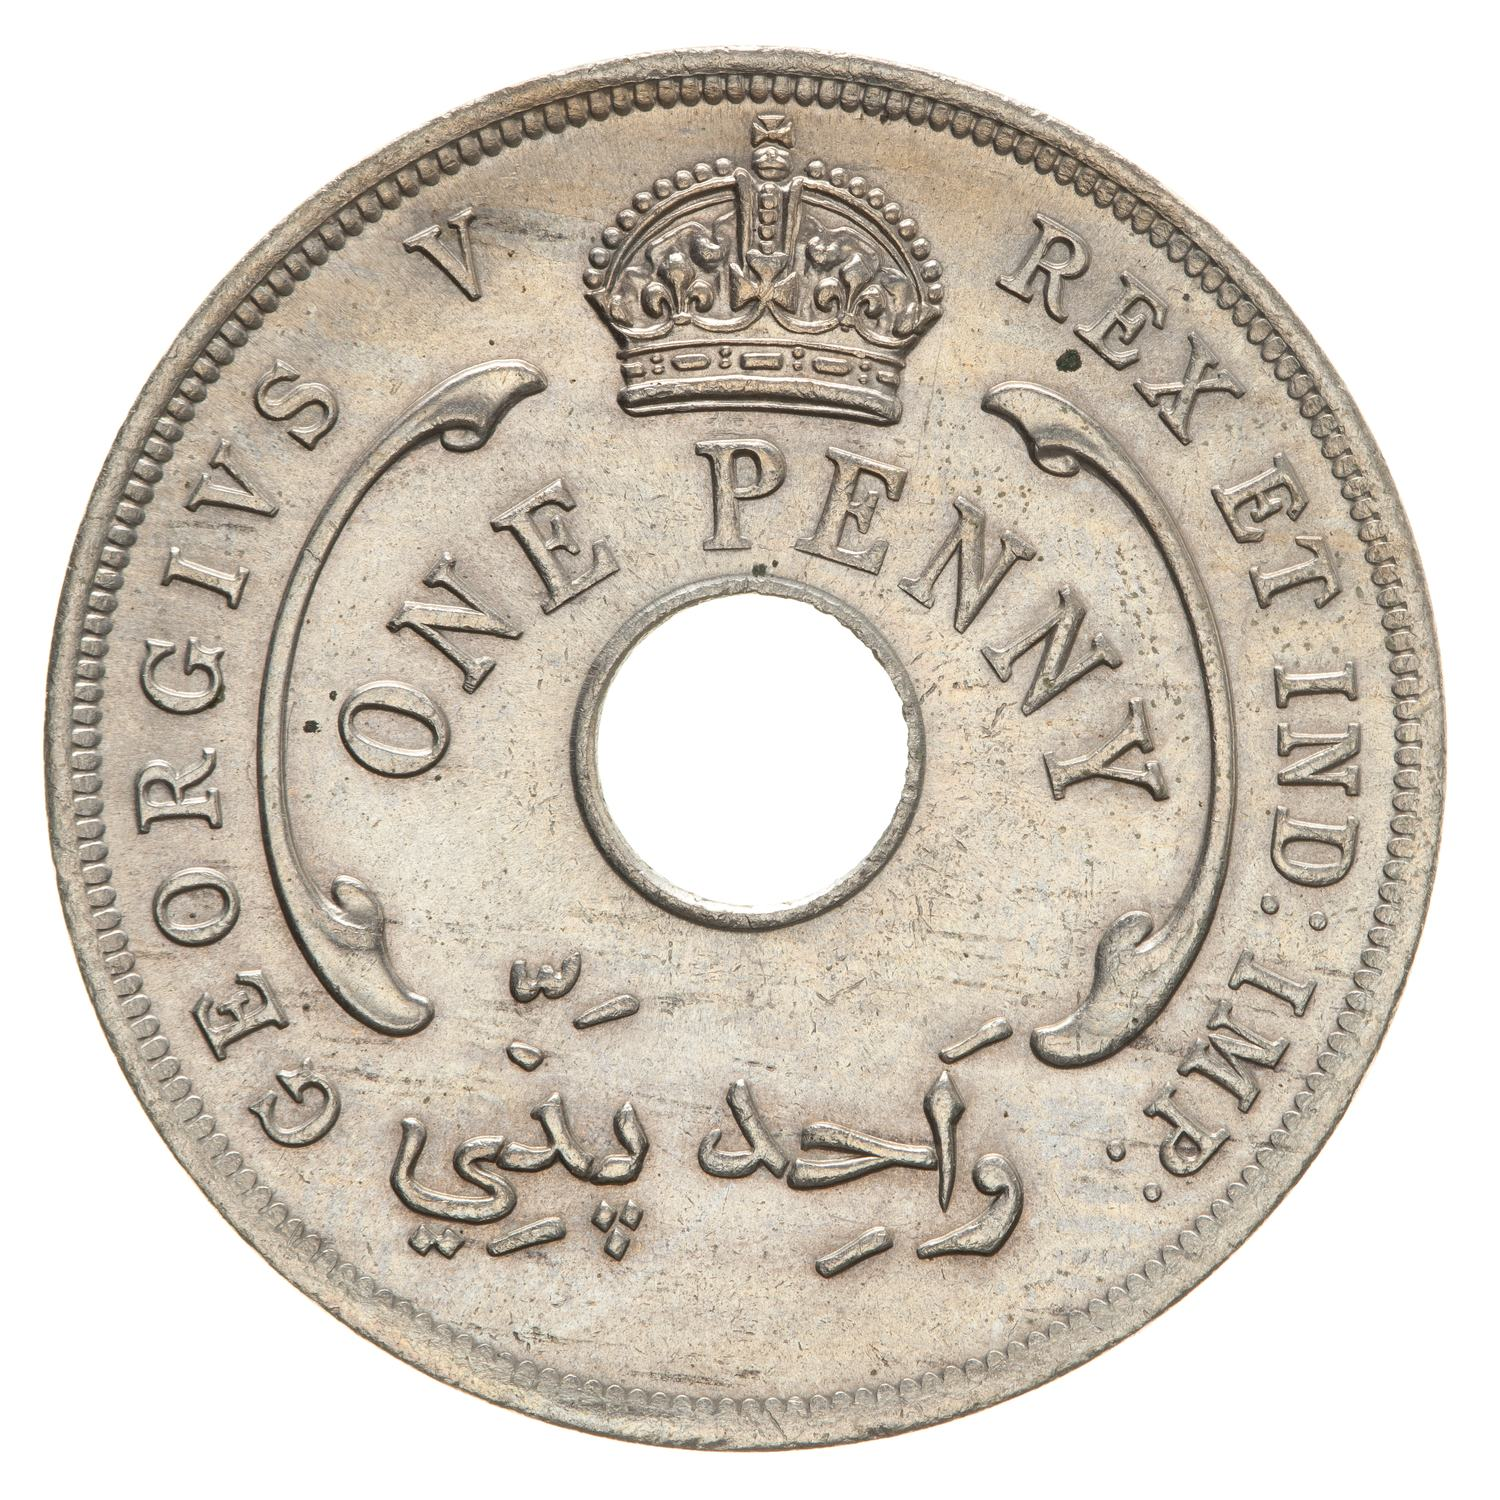 One Penny (CuproNickel): Photo Coin - 1 Penny, British West Africa, 1913